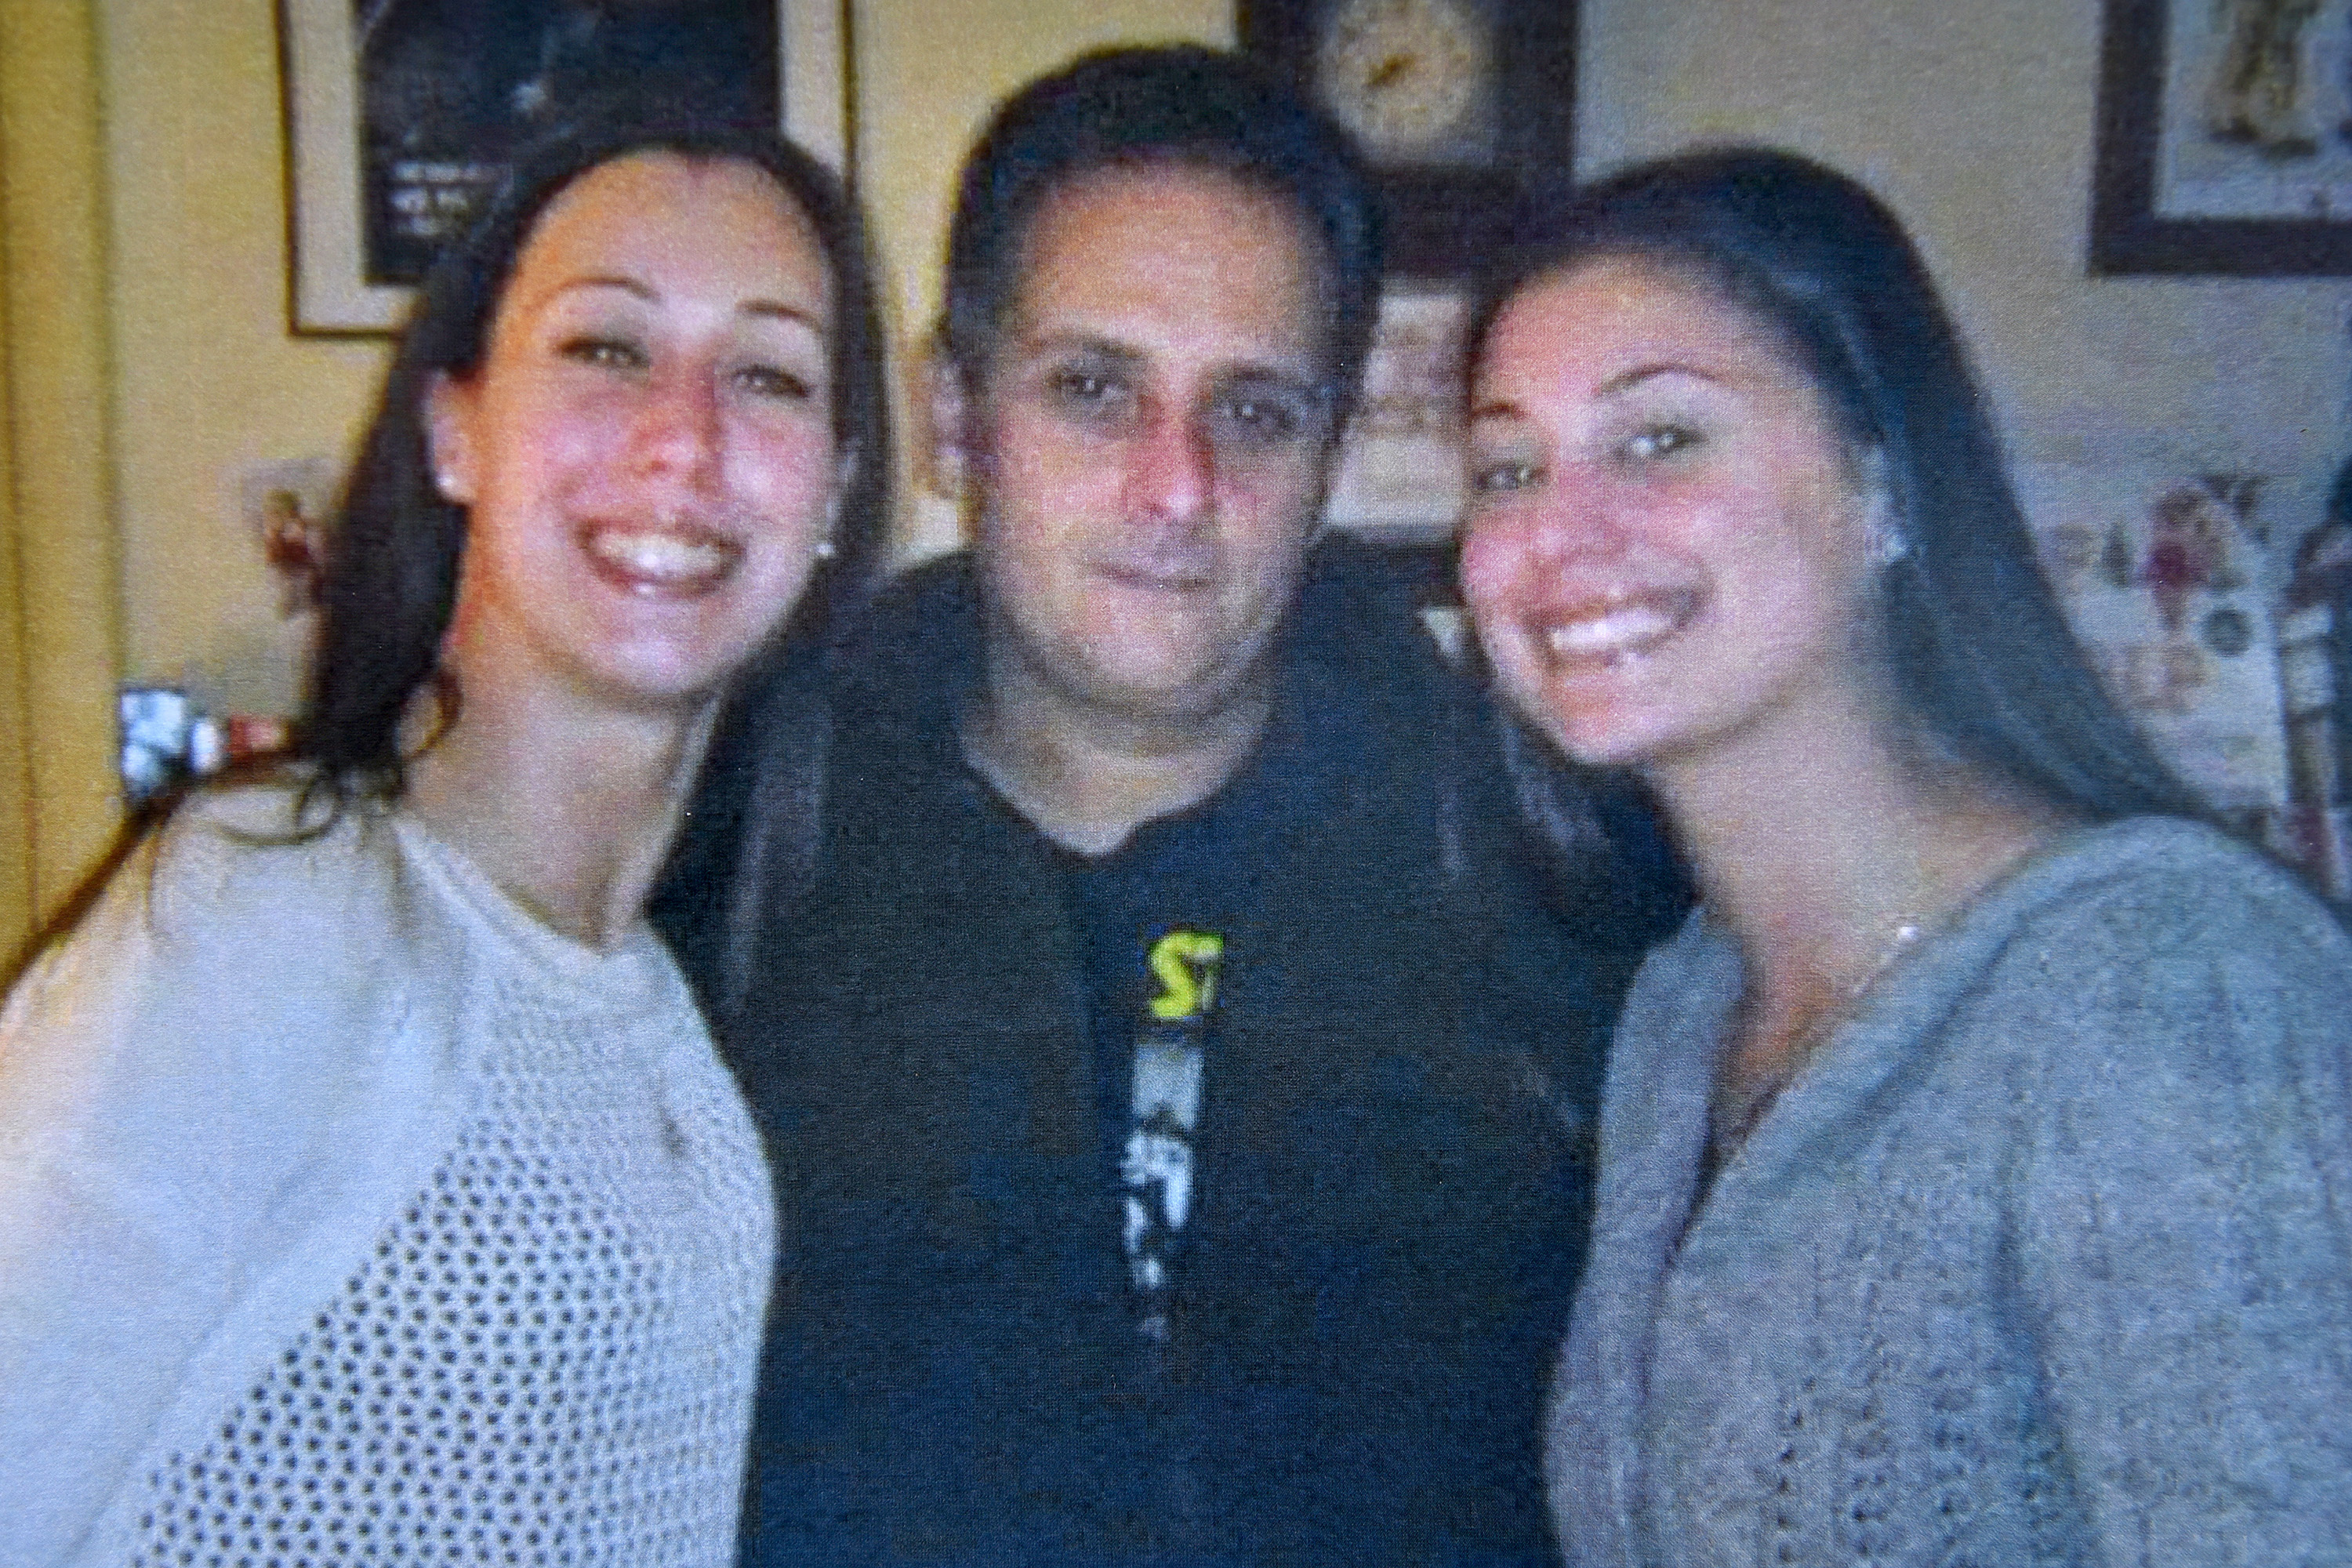 Danny Dimitri, a Northeast Philadelphia cook was killed in January by an off duty police officer racing a fellow off duty officer down Cottman Avenue on their way home from the gym. He is seen in family photo from Christmas 2015, with his nieces Stephanie Prosinski, 30 (left) and Brittany Prosinski, 31(right).